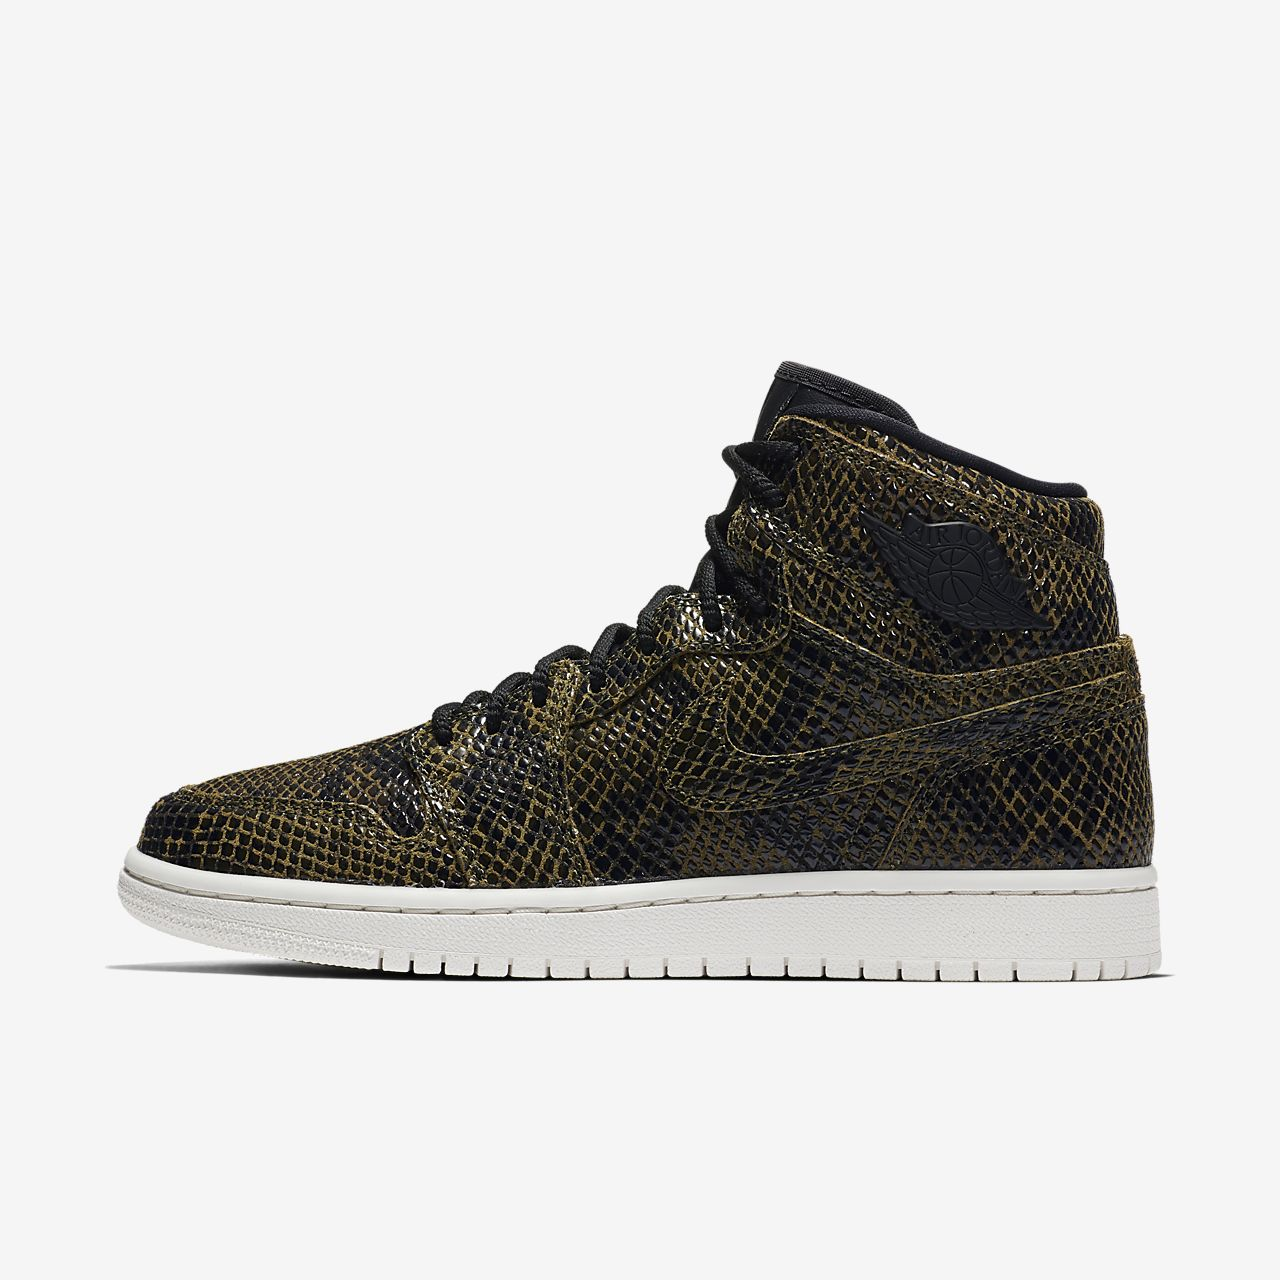 Air Jordan 1 Retro High Premium Women's Shoe